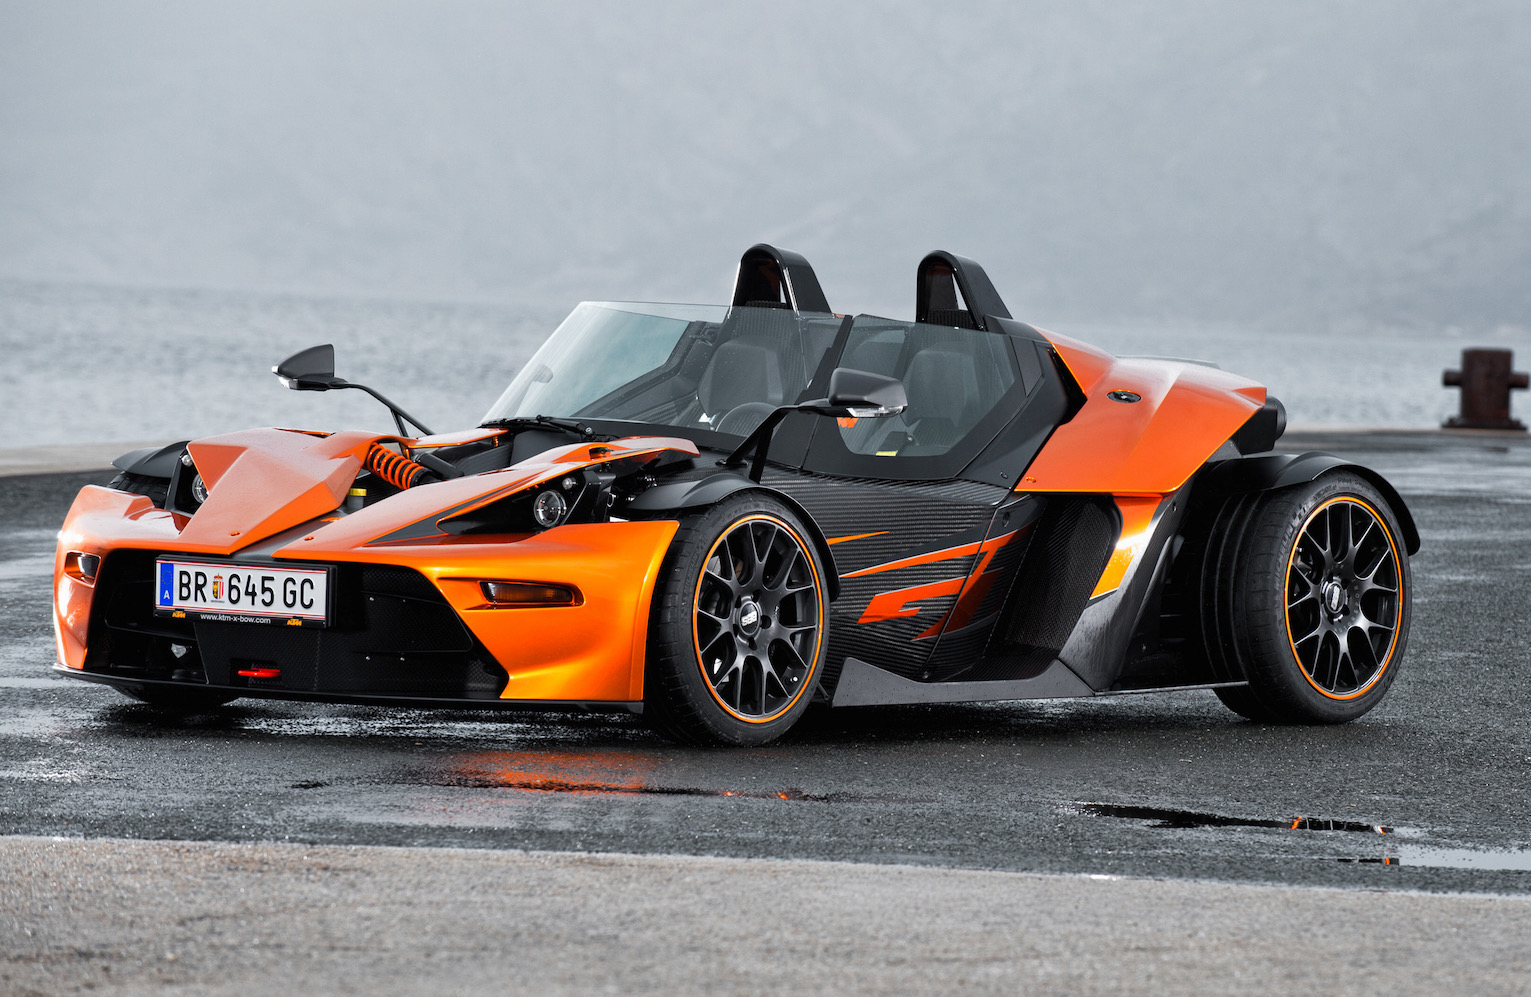 ktm x bow gt now available in australia adds windscreen. Black Bedroom Furniture Sets. Home Design Ideas